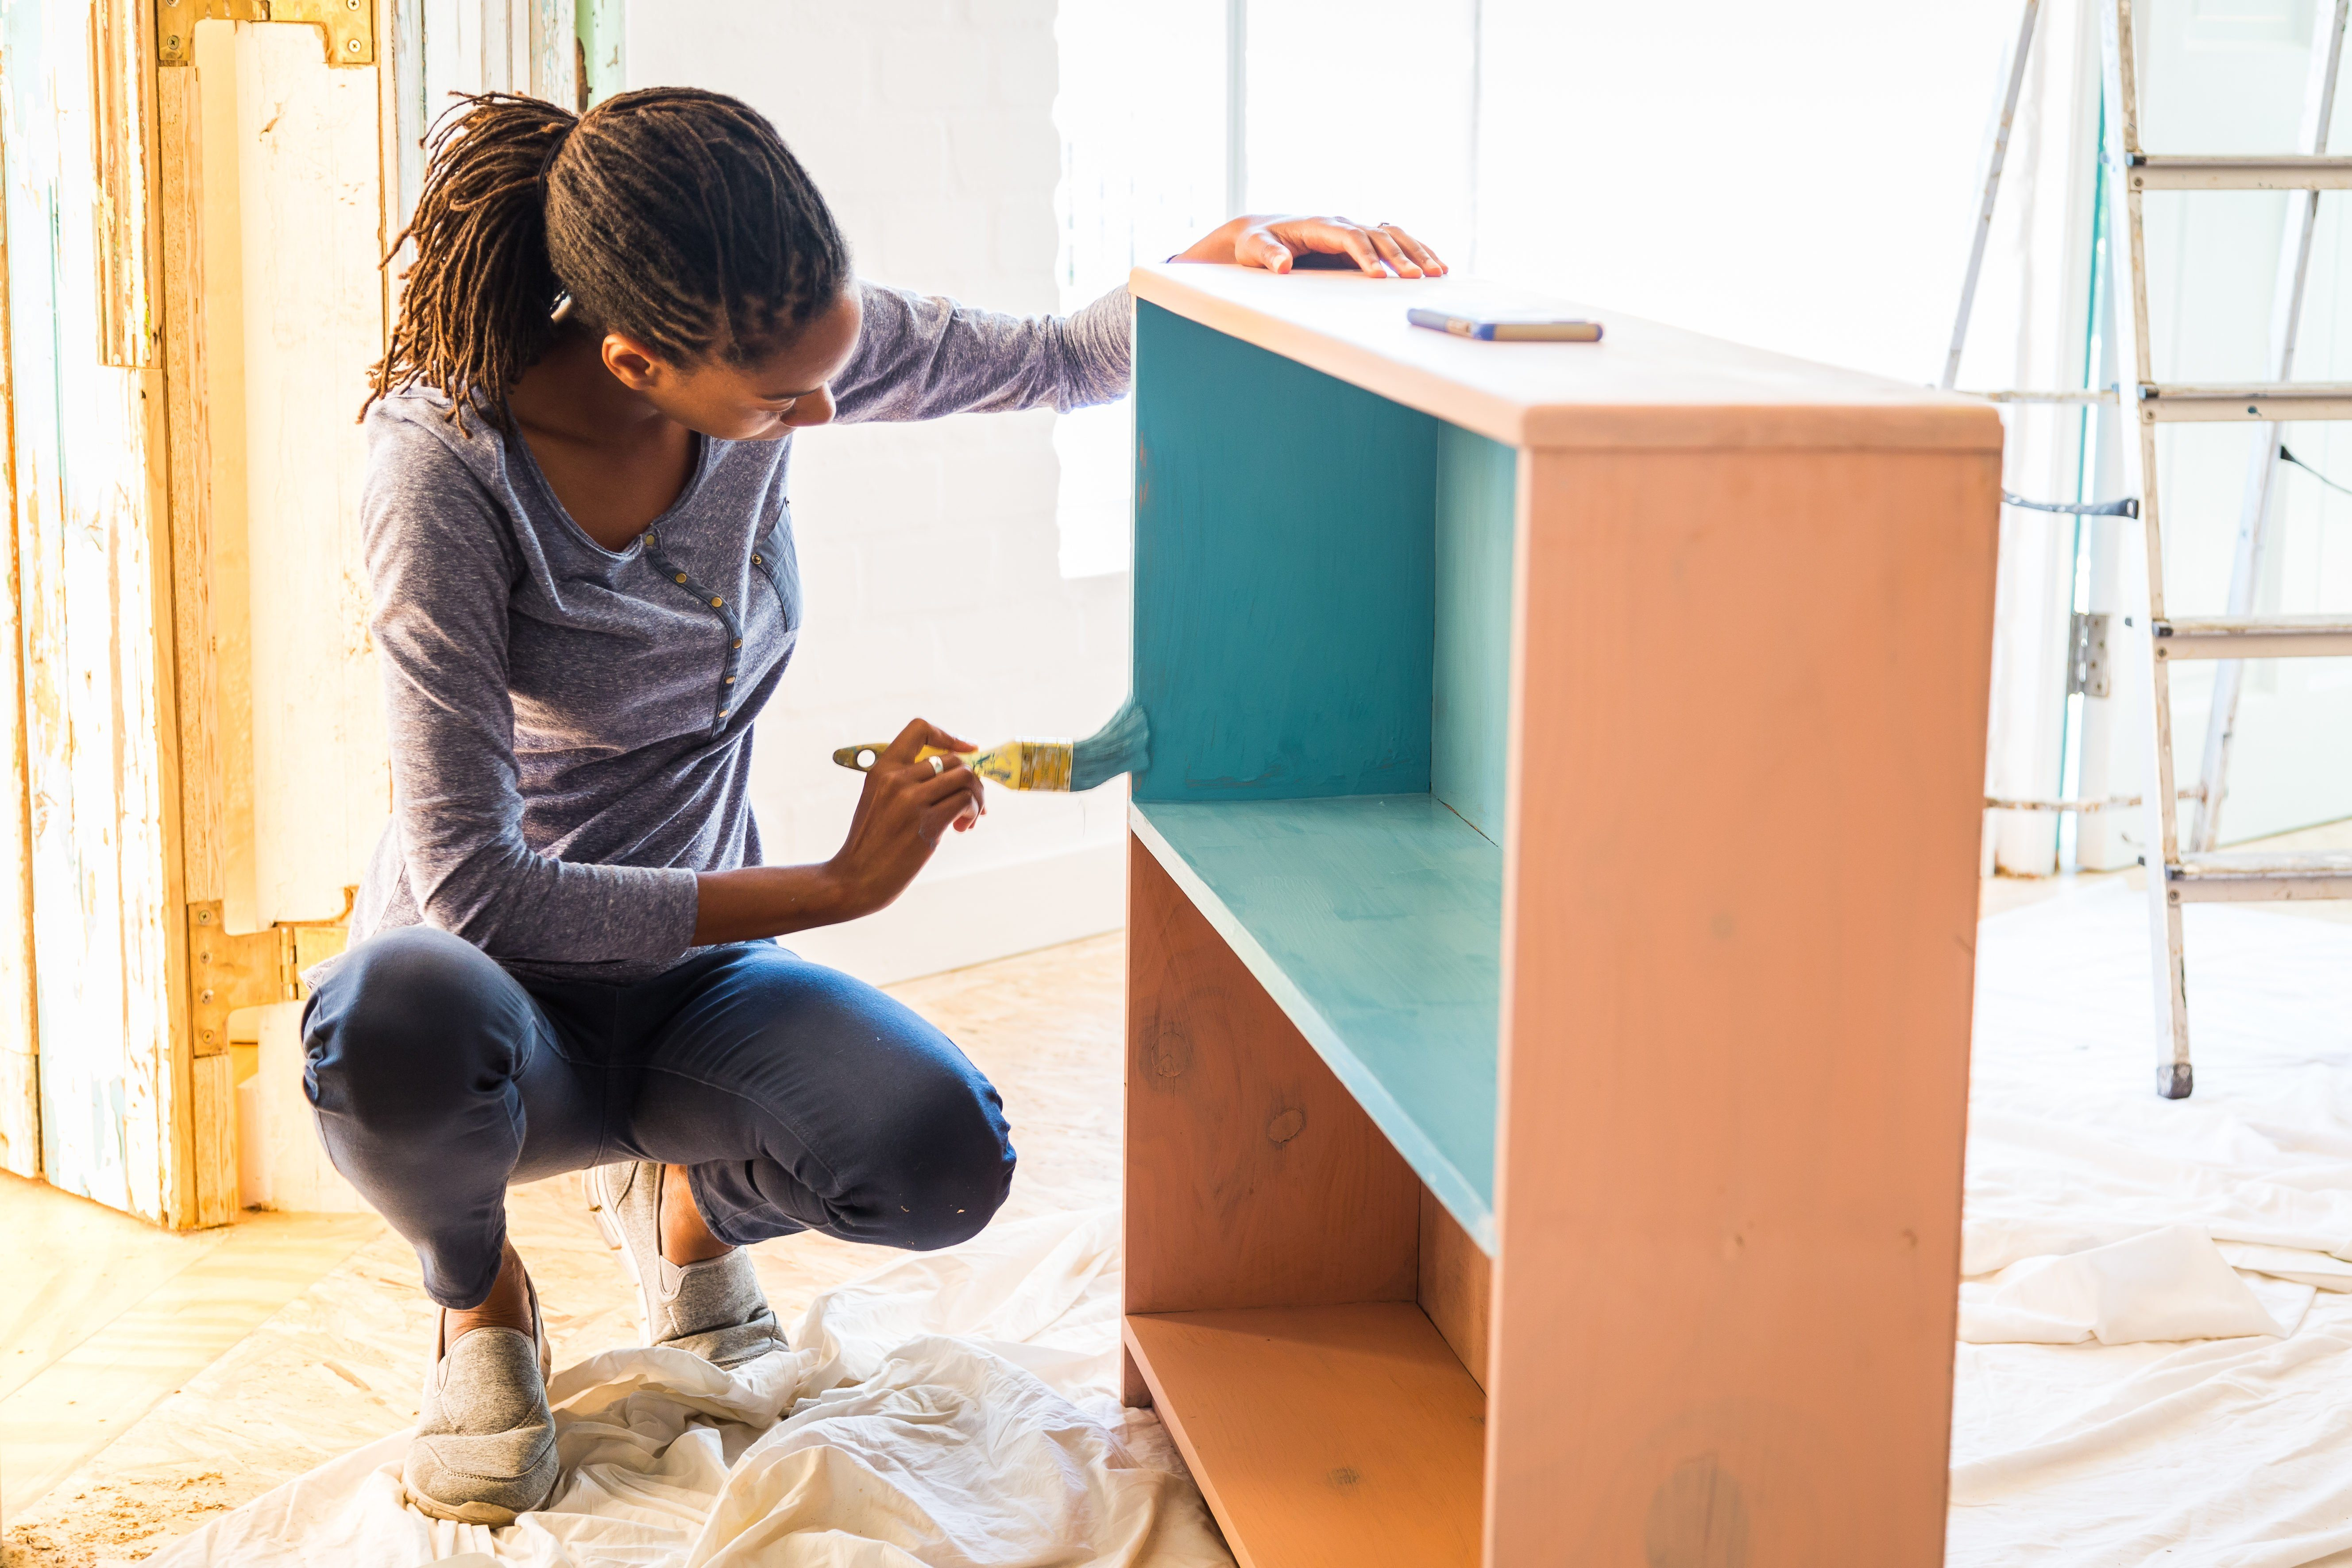 Young woman renovating her home